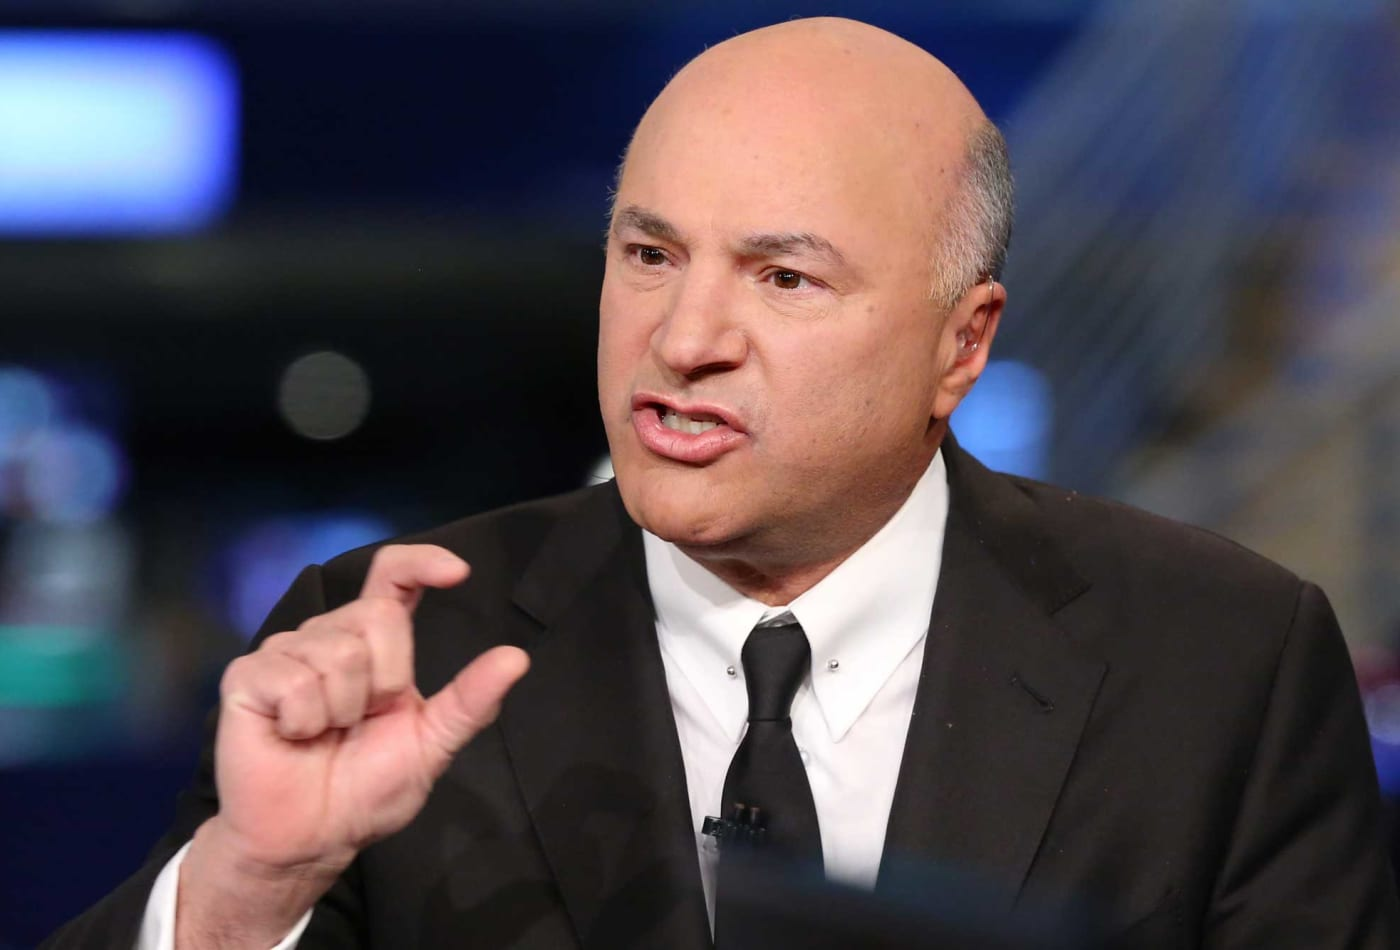 Here are the top three 'stupid' things millennials waste money on, says Shark Tank's Kevin O'Leary